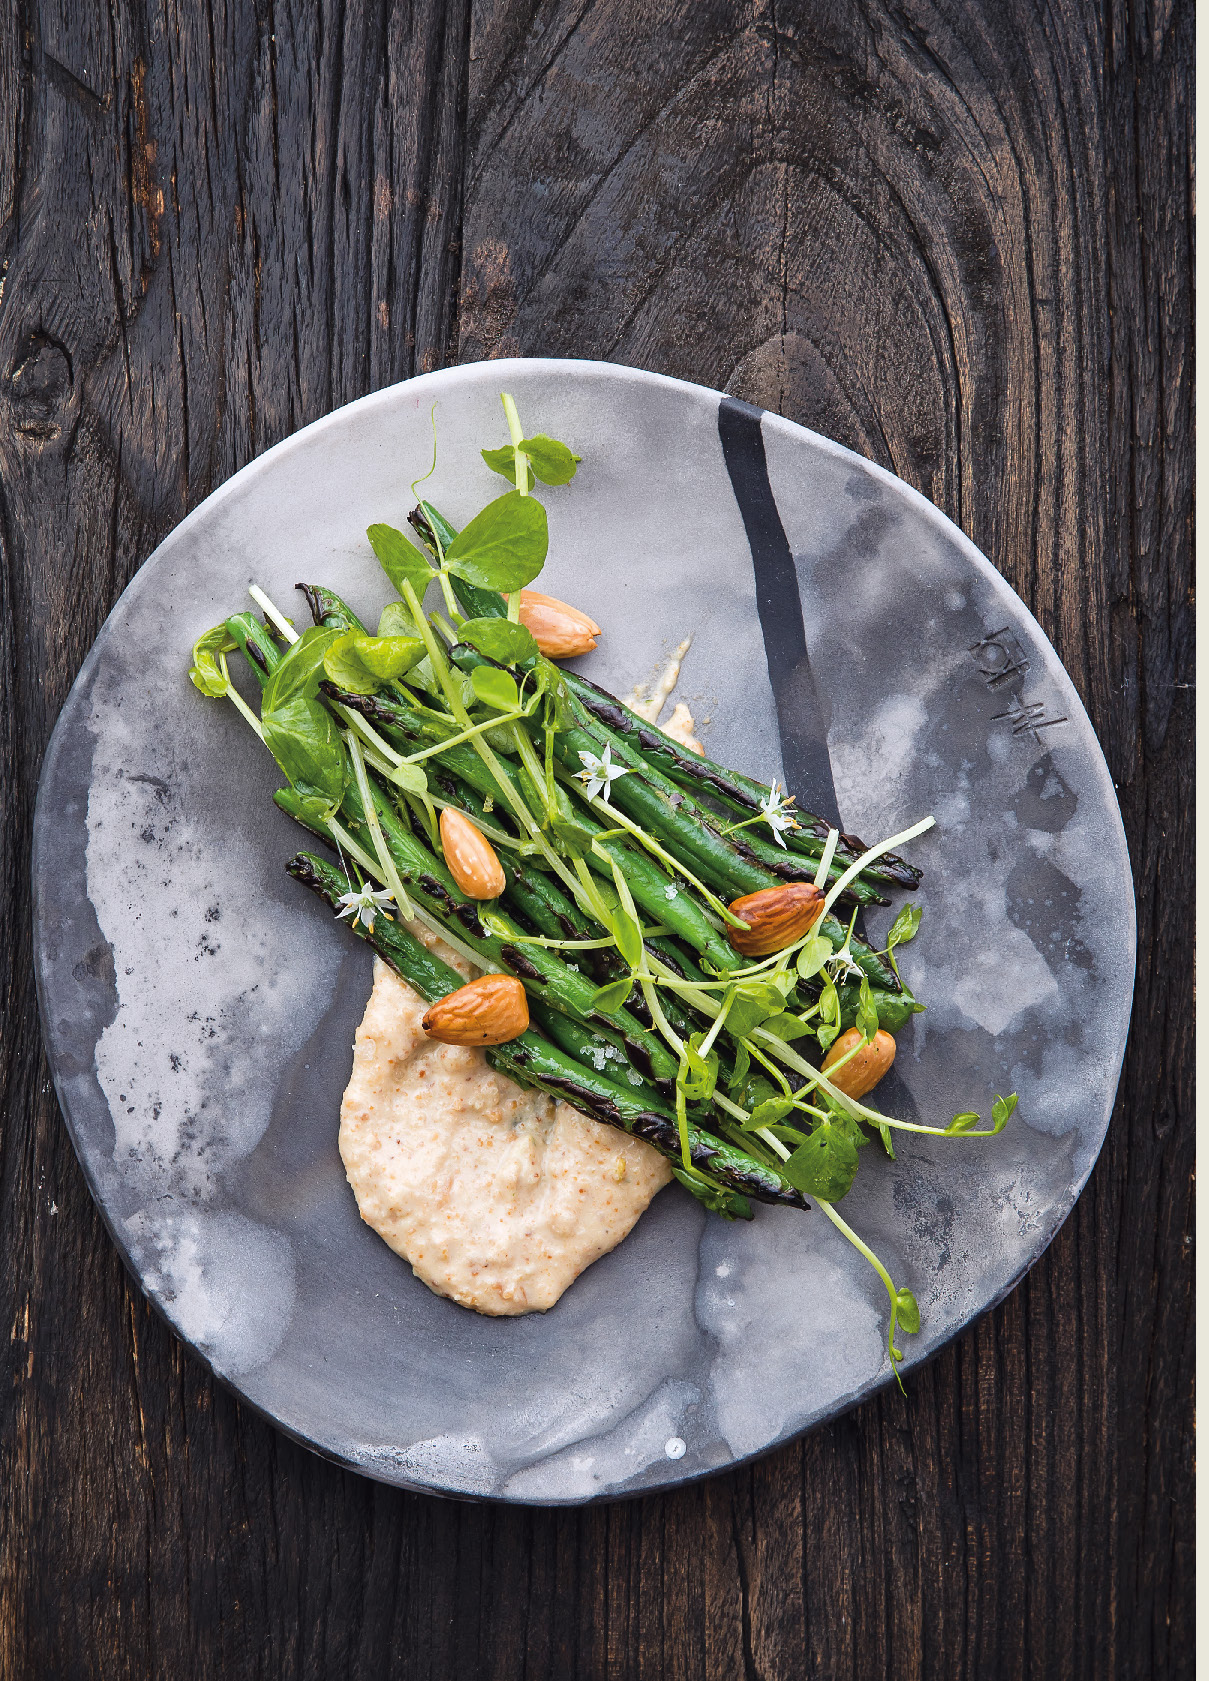 Green beans, roasted almond cream